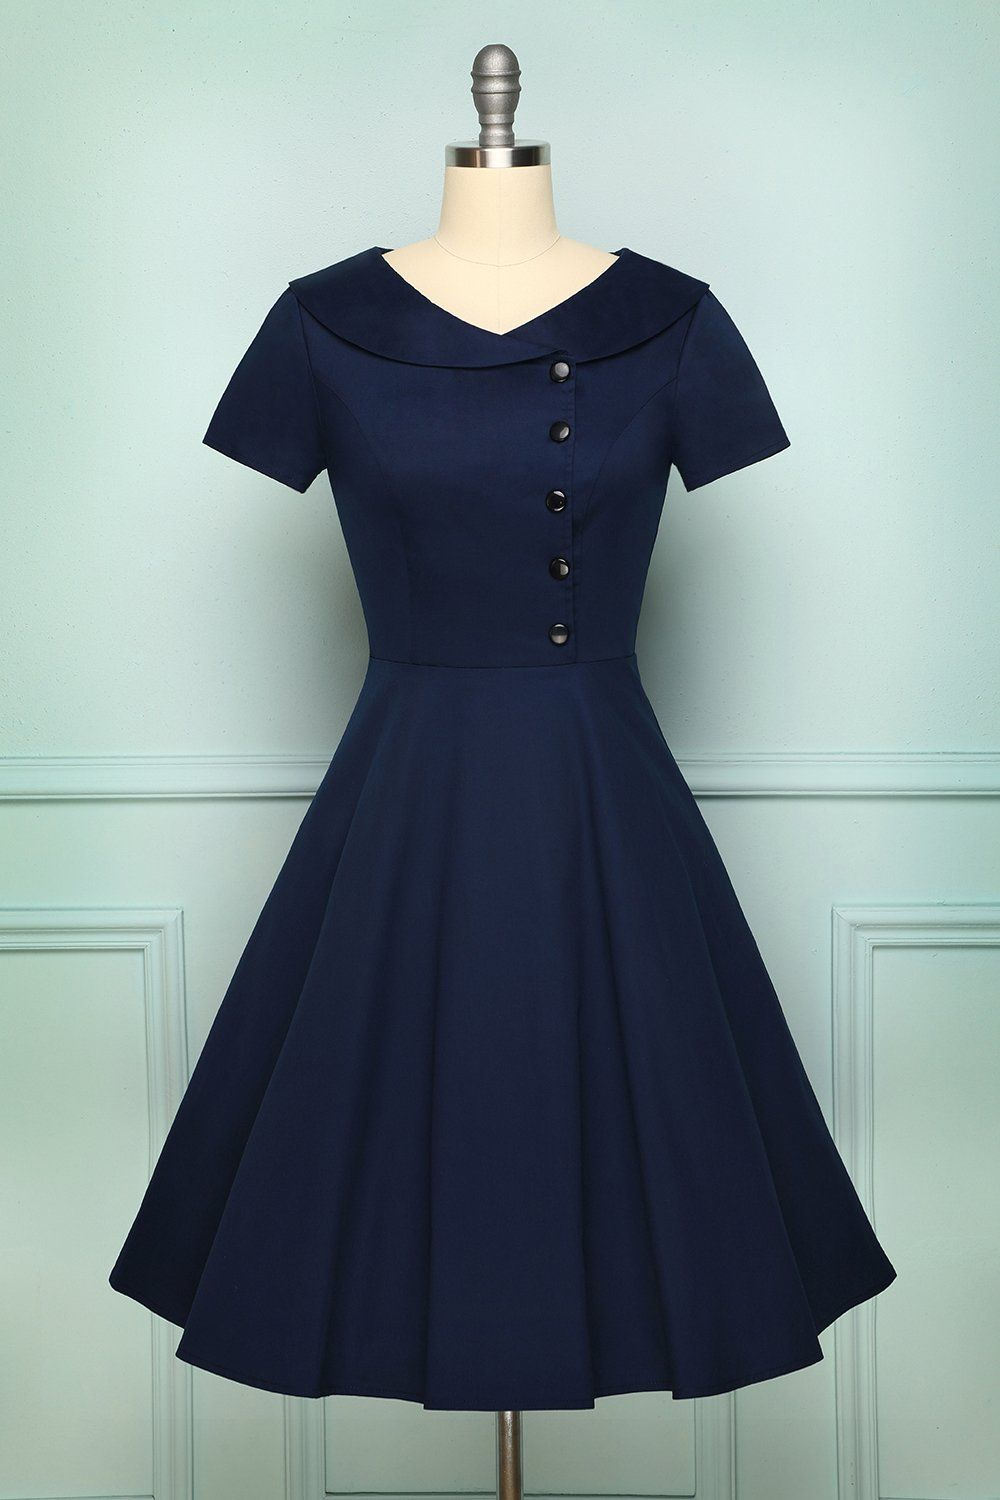 Navy Blue Button Dress In 2020 Frock For Women Navy Dress Outfits Vintage 1950s Dresses